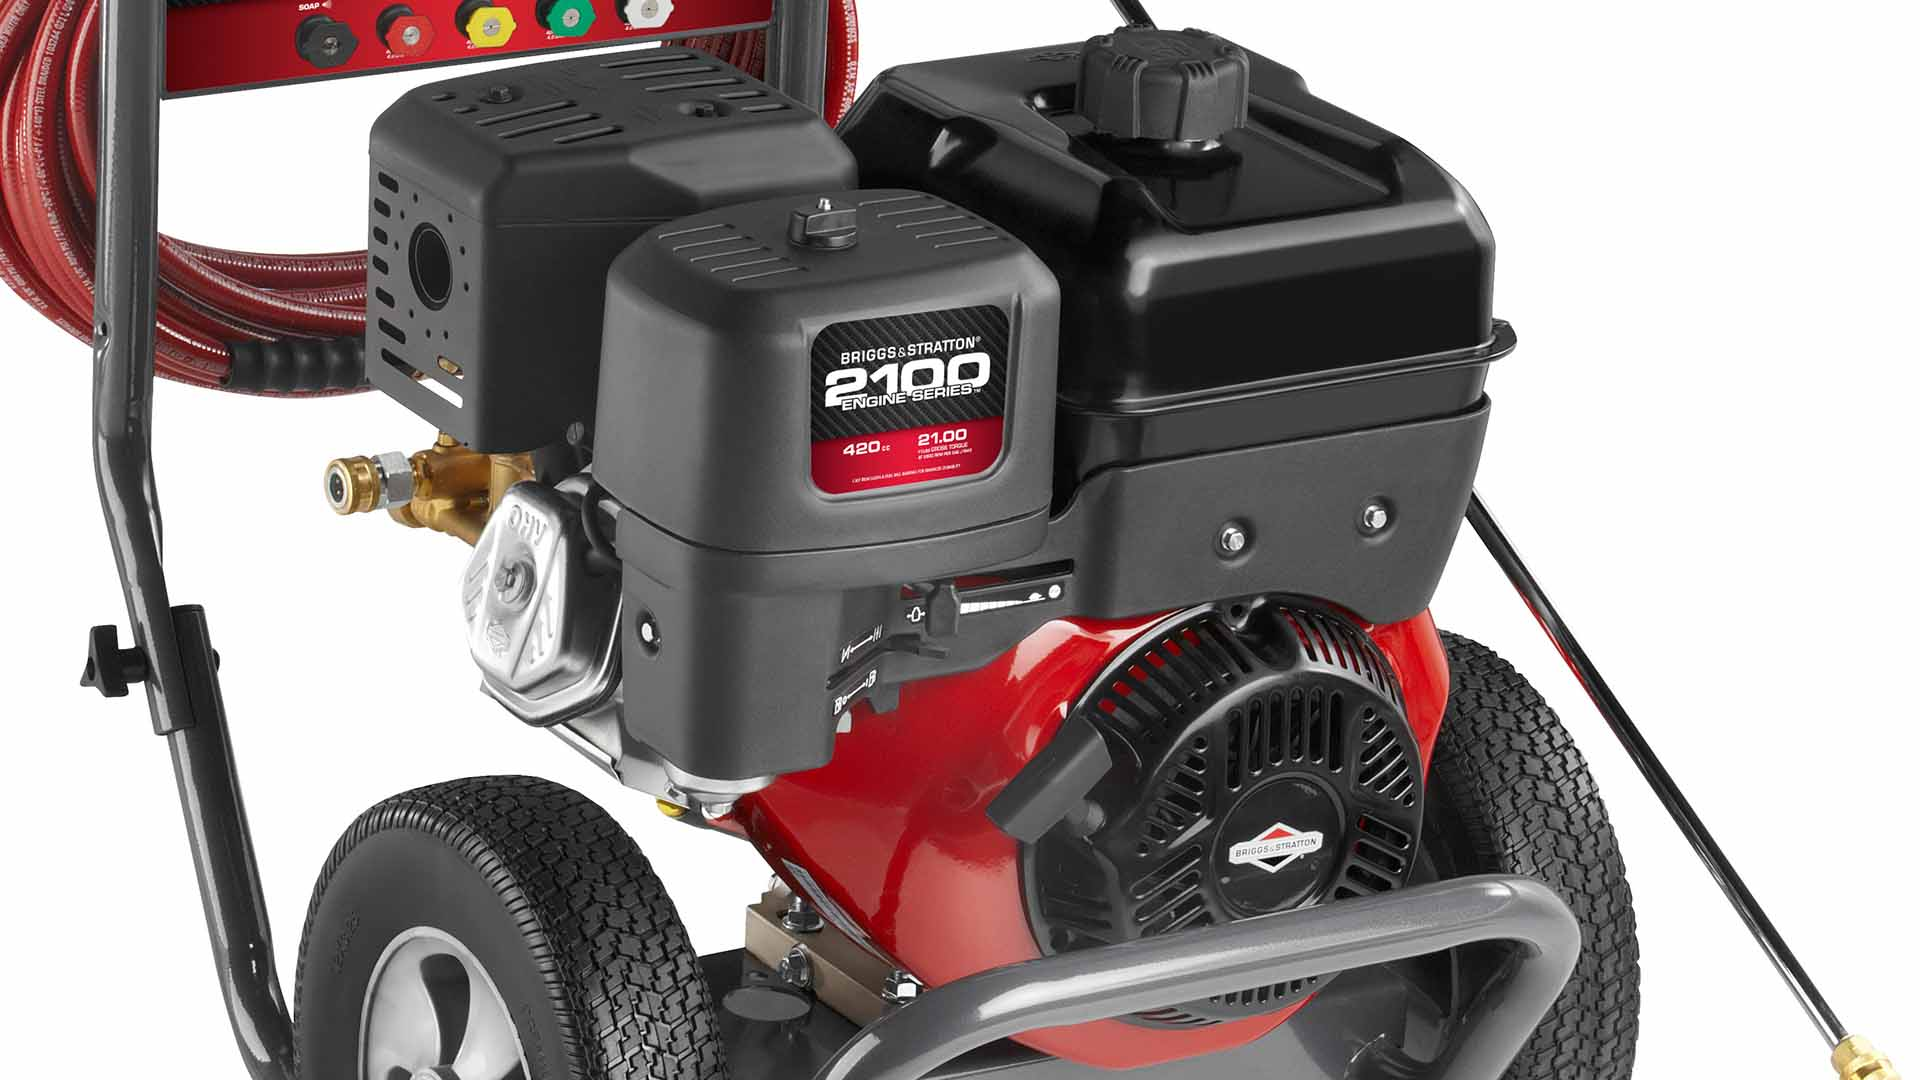 Briggs & Stratton 2100 Series™ OHV Engine (420cc)